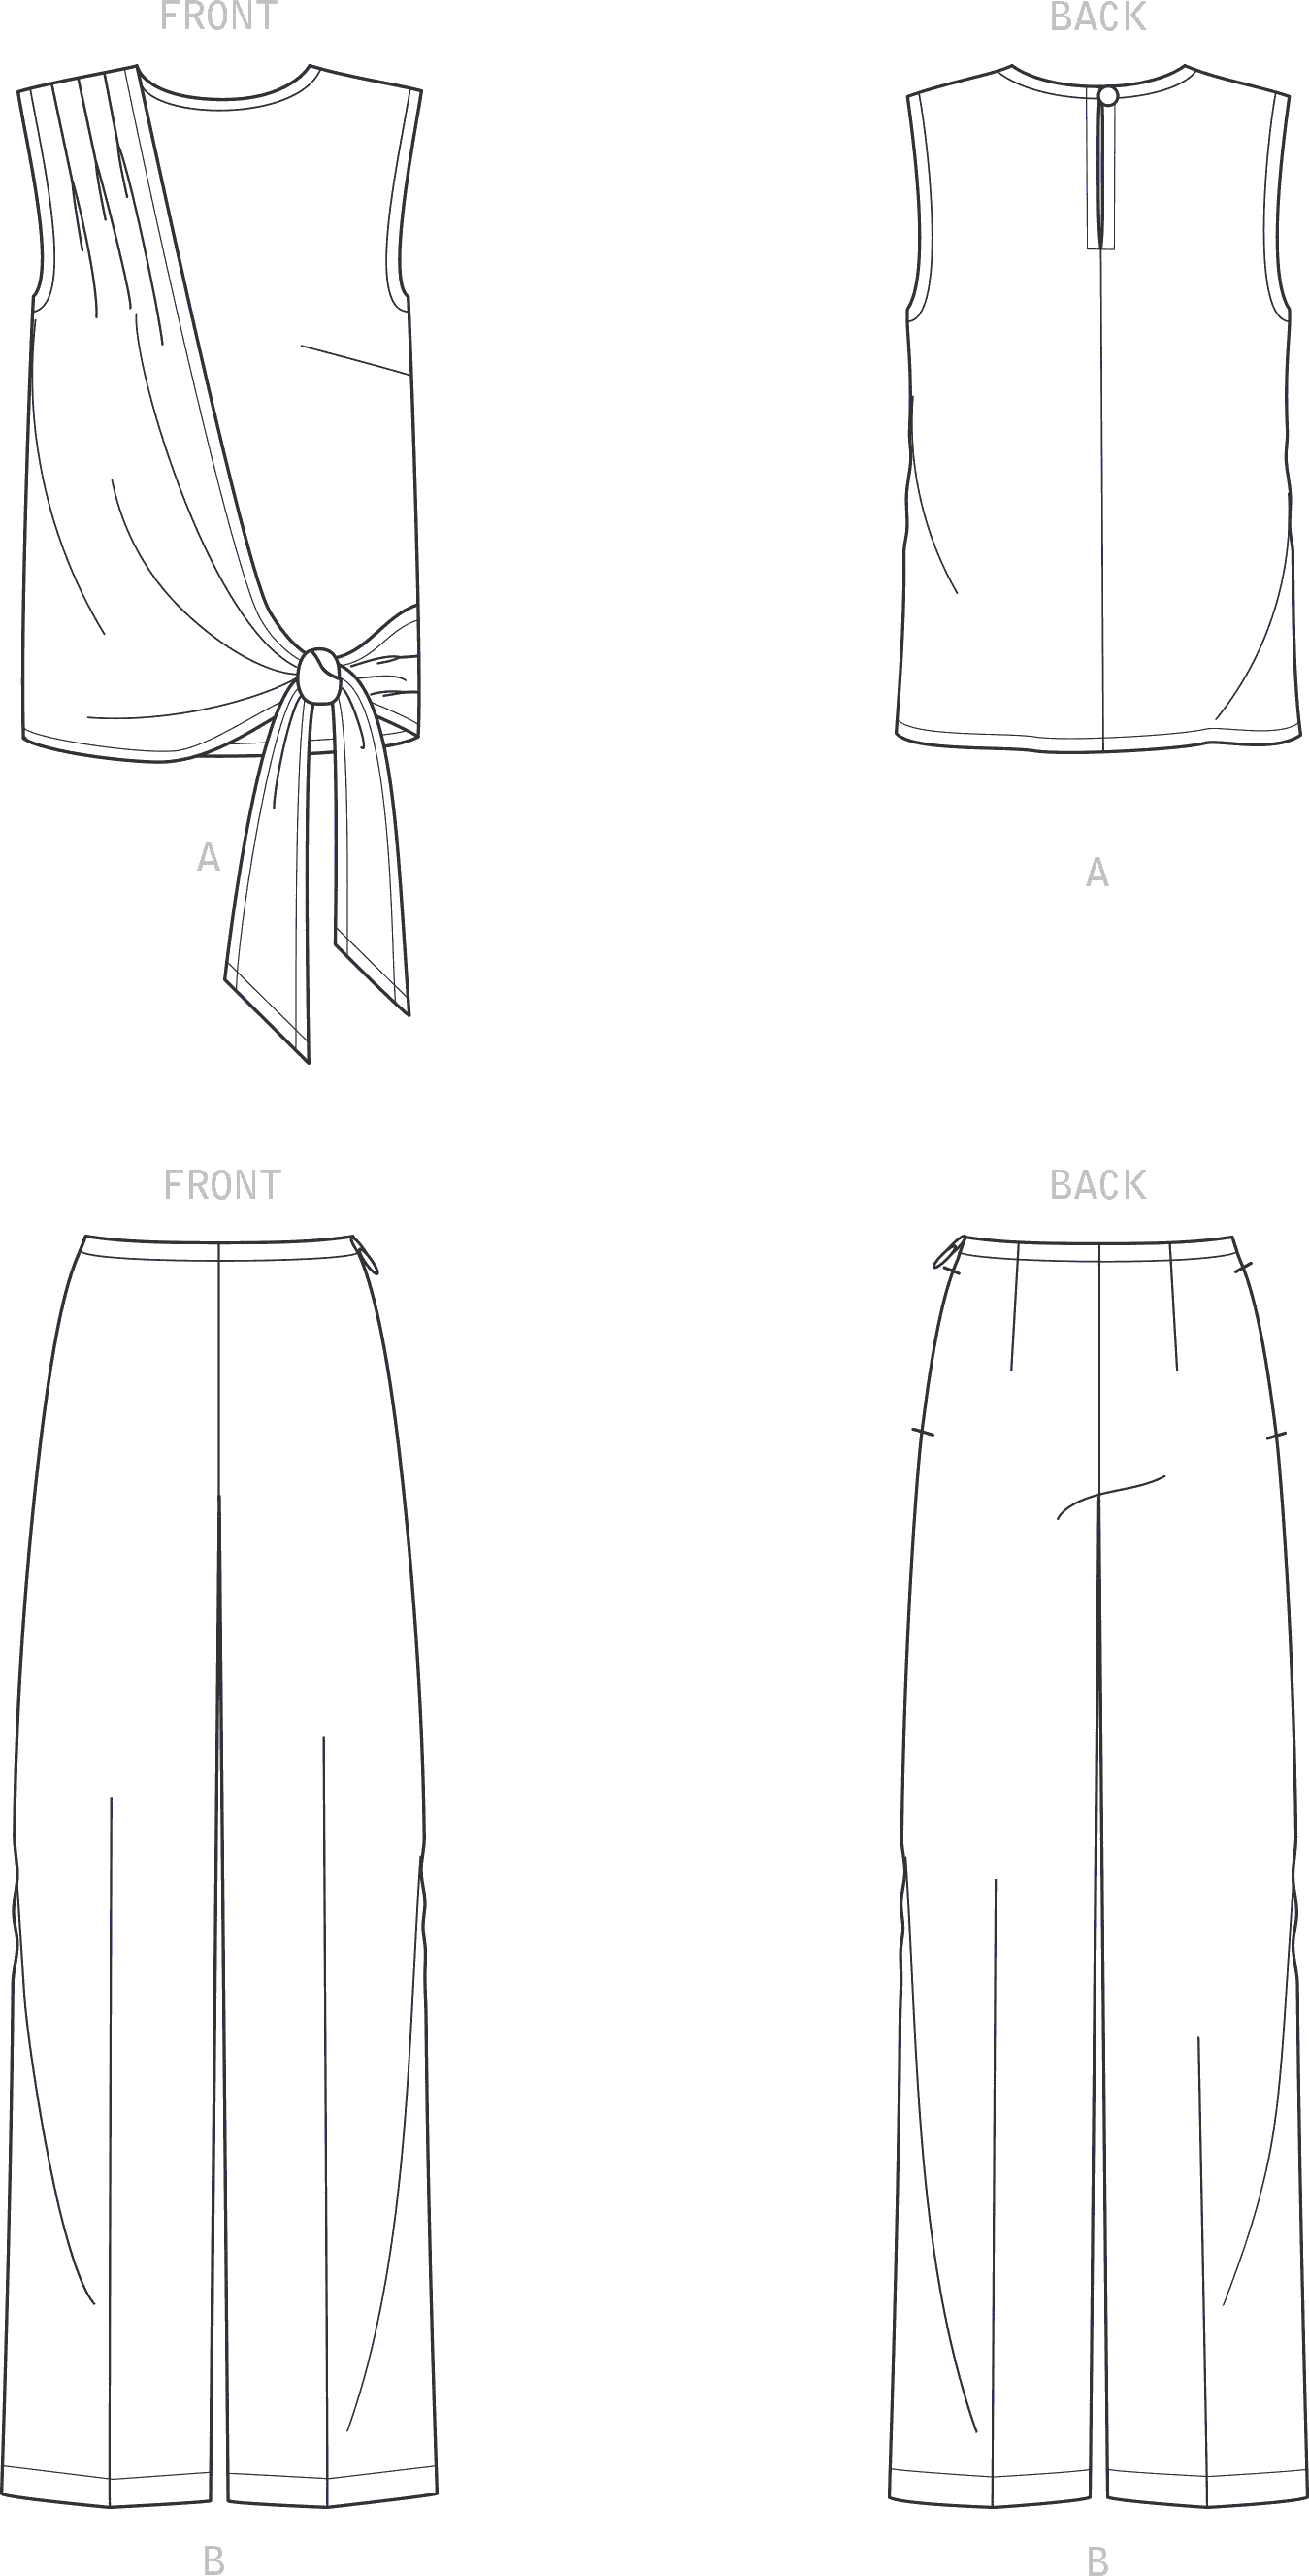 New Look Sewing Pattern N6662 Misses Drape Top and Wide Leg Pants 6662 Line Art From Patternsandplains.com